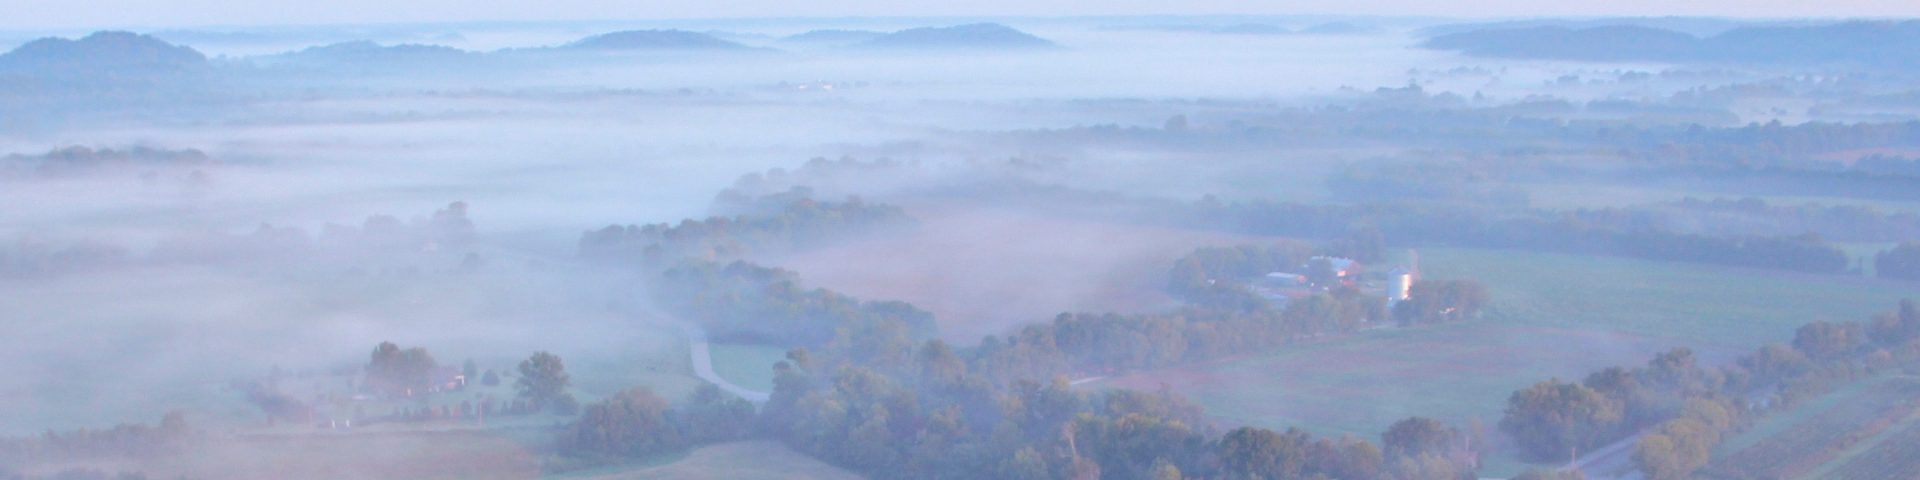 A foggy morning view of patches of farm land separated by trees